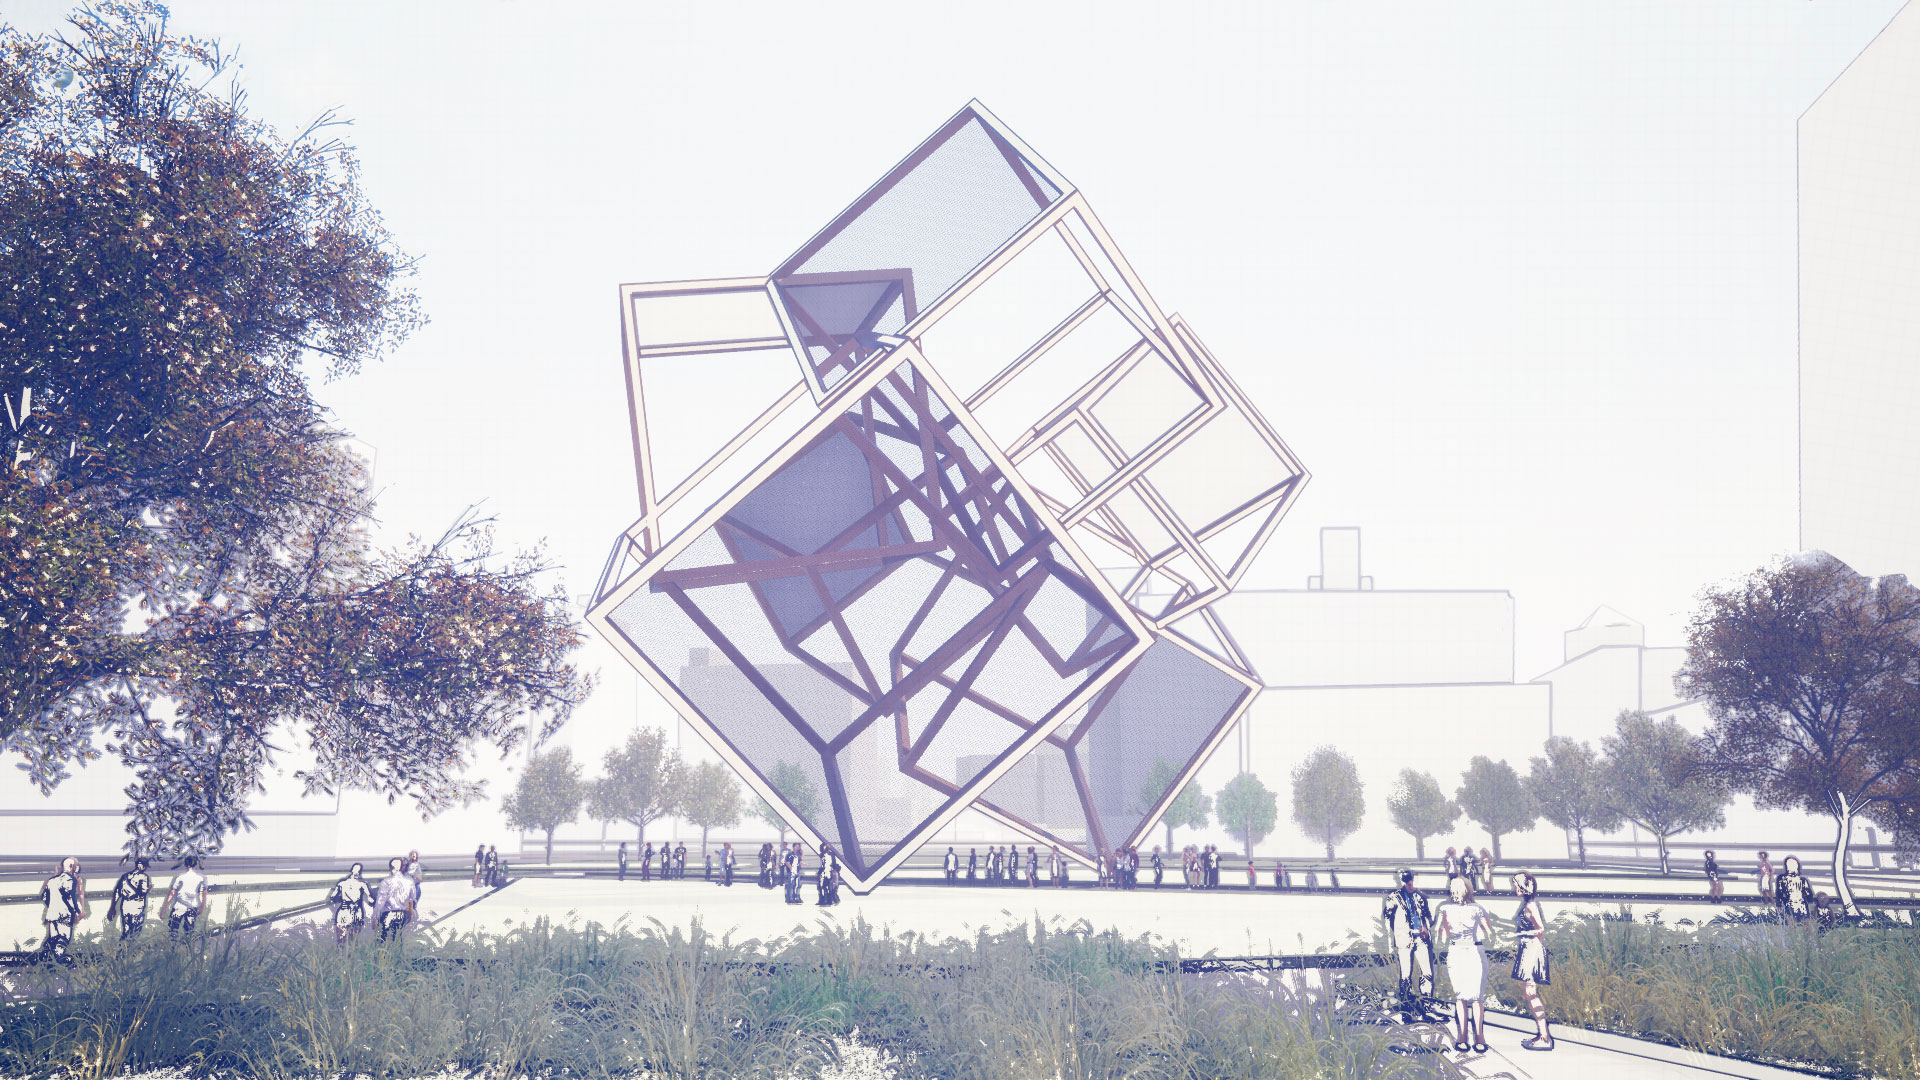 zimarty_instalation_pershing_square_proposal_architectural_design_zicube.jpg